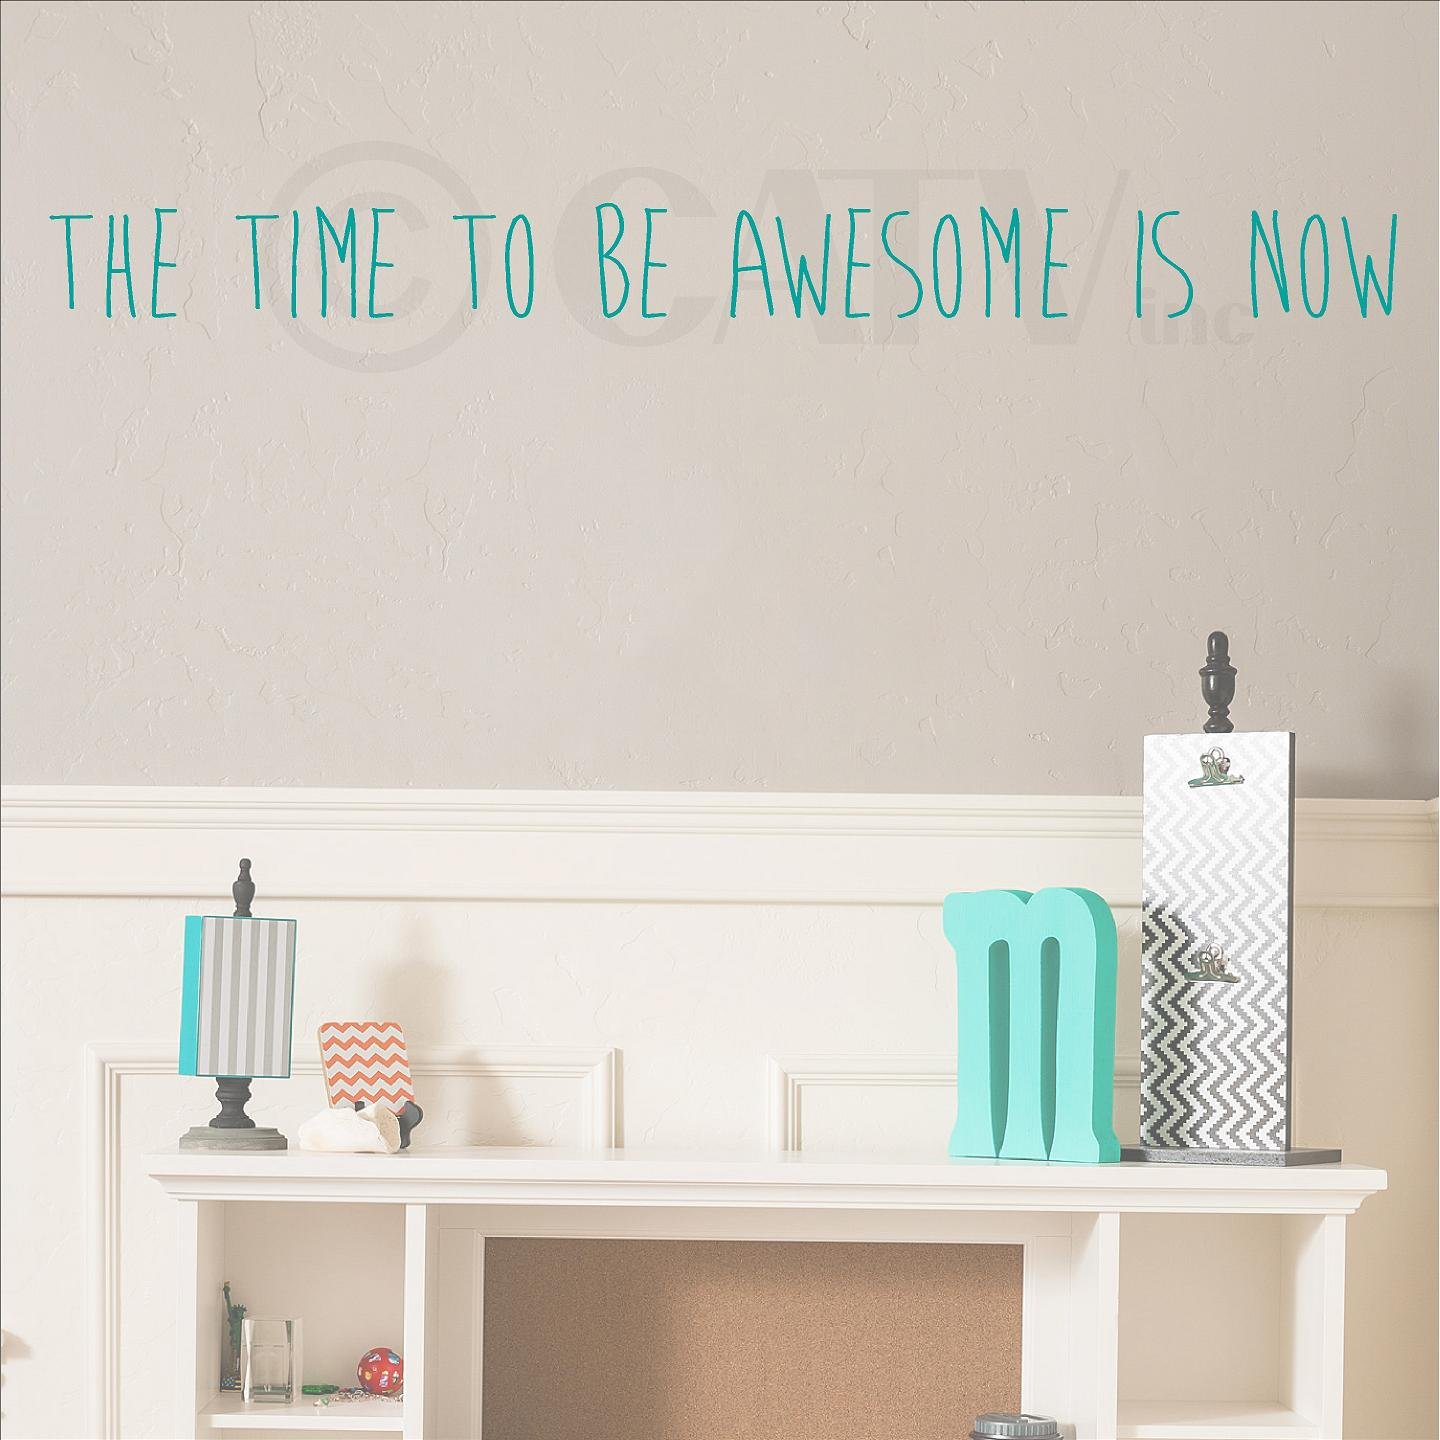 The Time to Be Awesome Is Now (M) Wall Saying Vinyl Lettering Home Decor Decal Stickers Quotes Vinyl Lettering Wall Decals